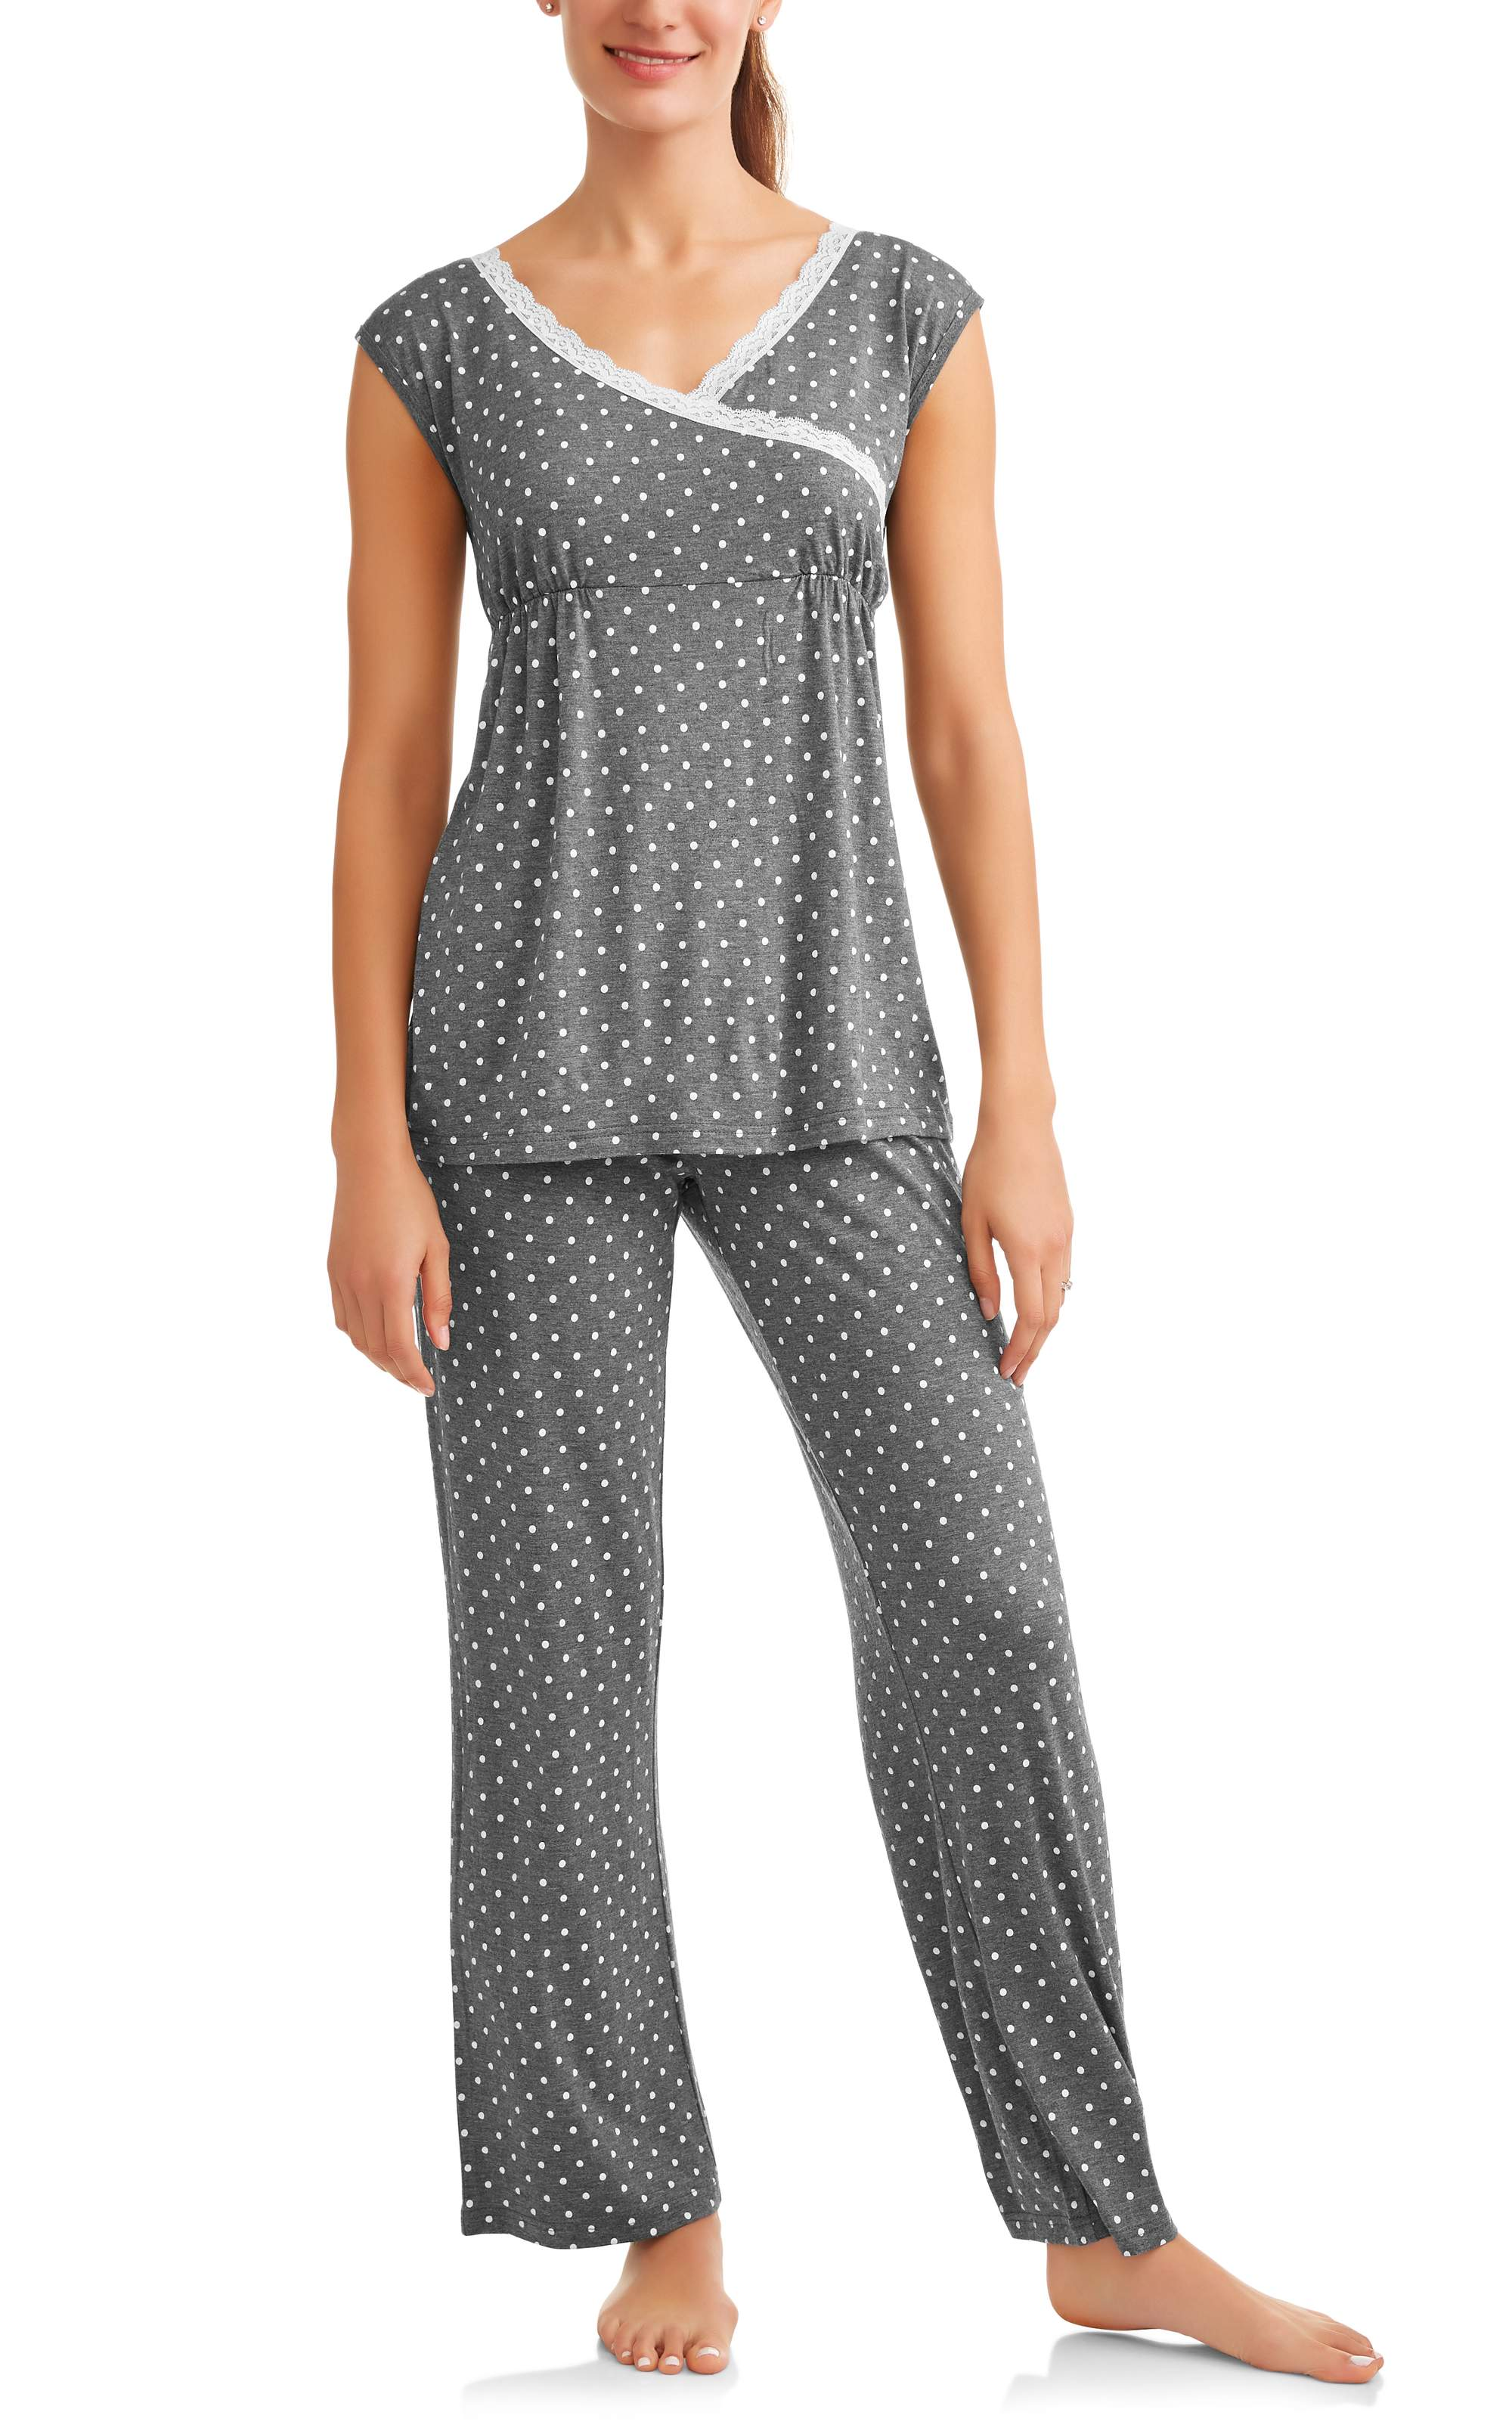 Maternity Nursing Sleeveless Top and Pants Sleep Set -- Available in Plus Sizes by Generic